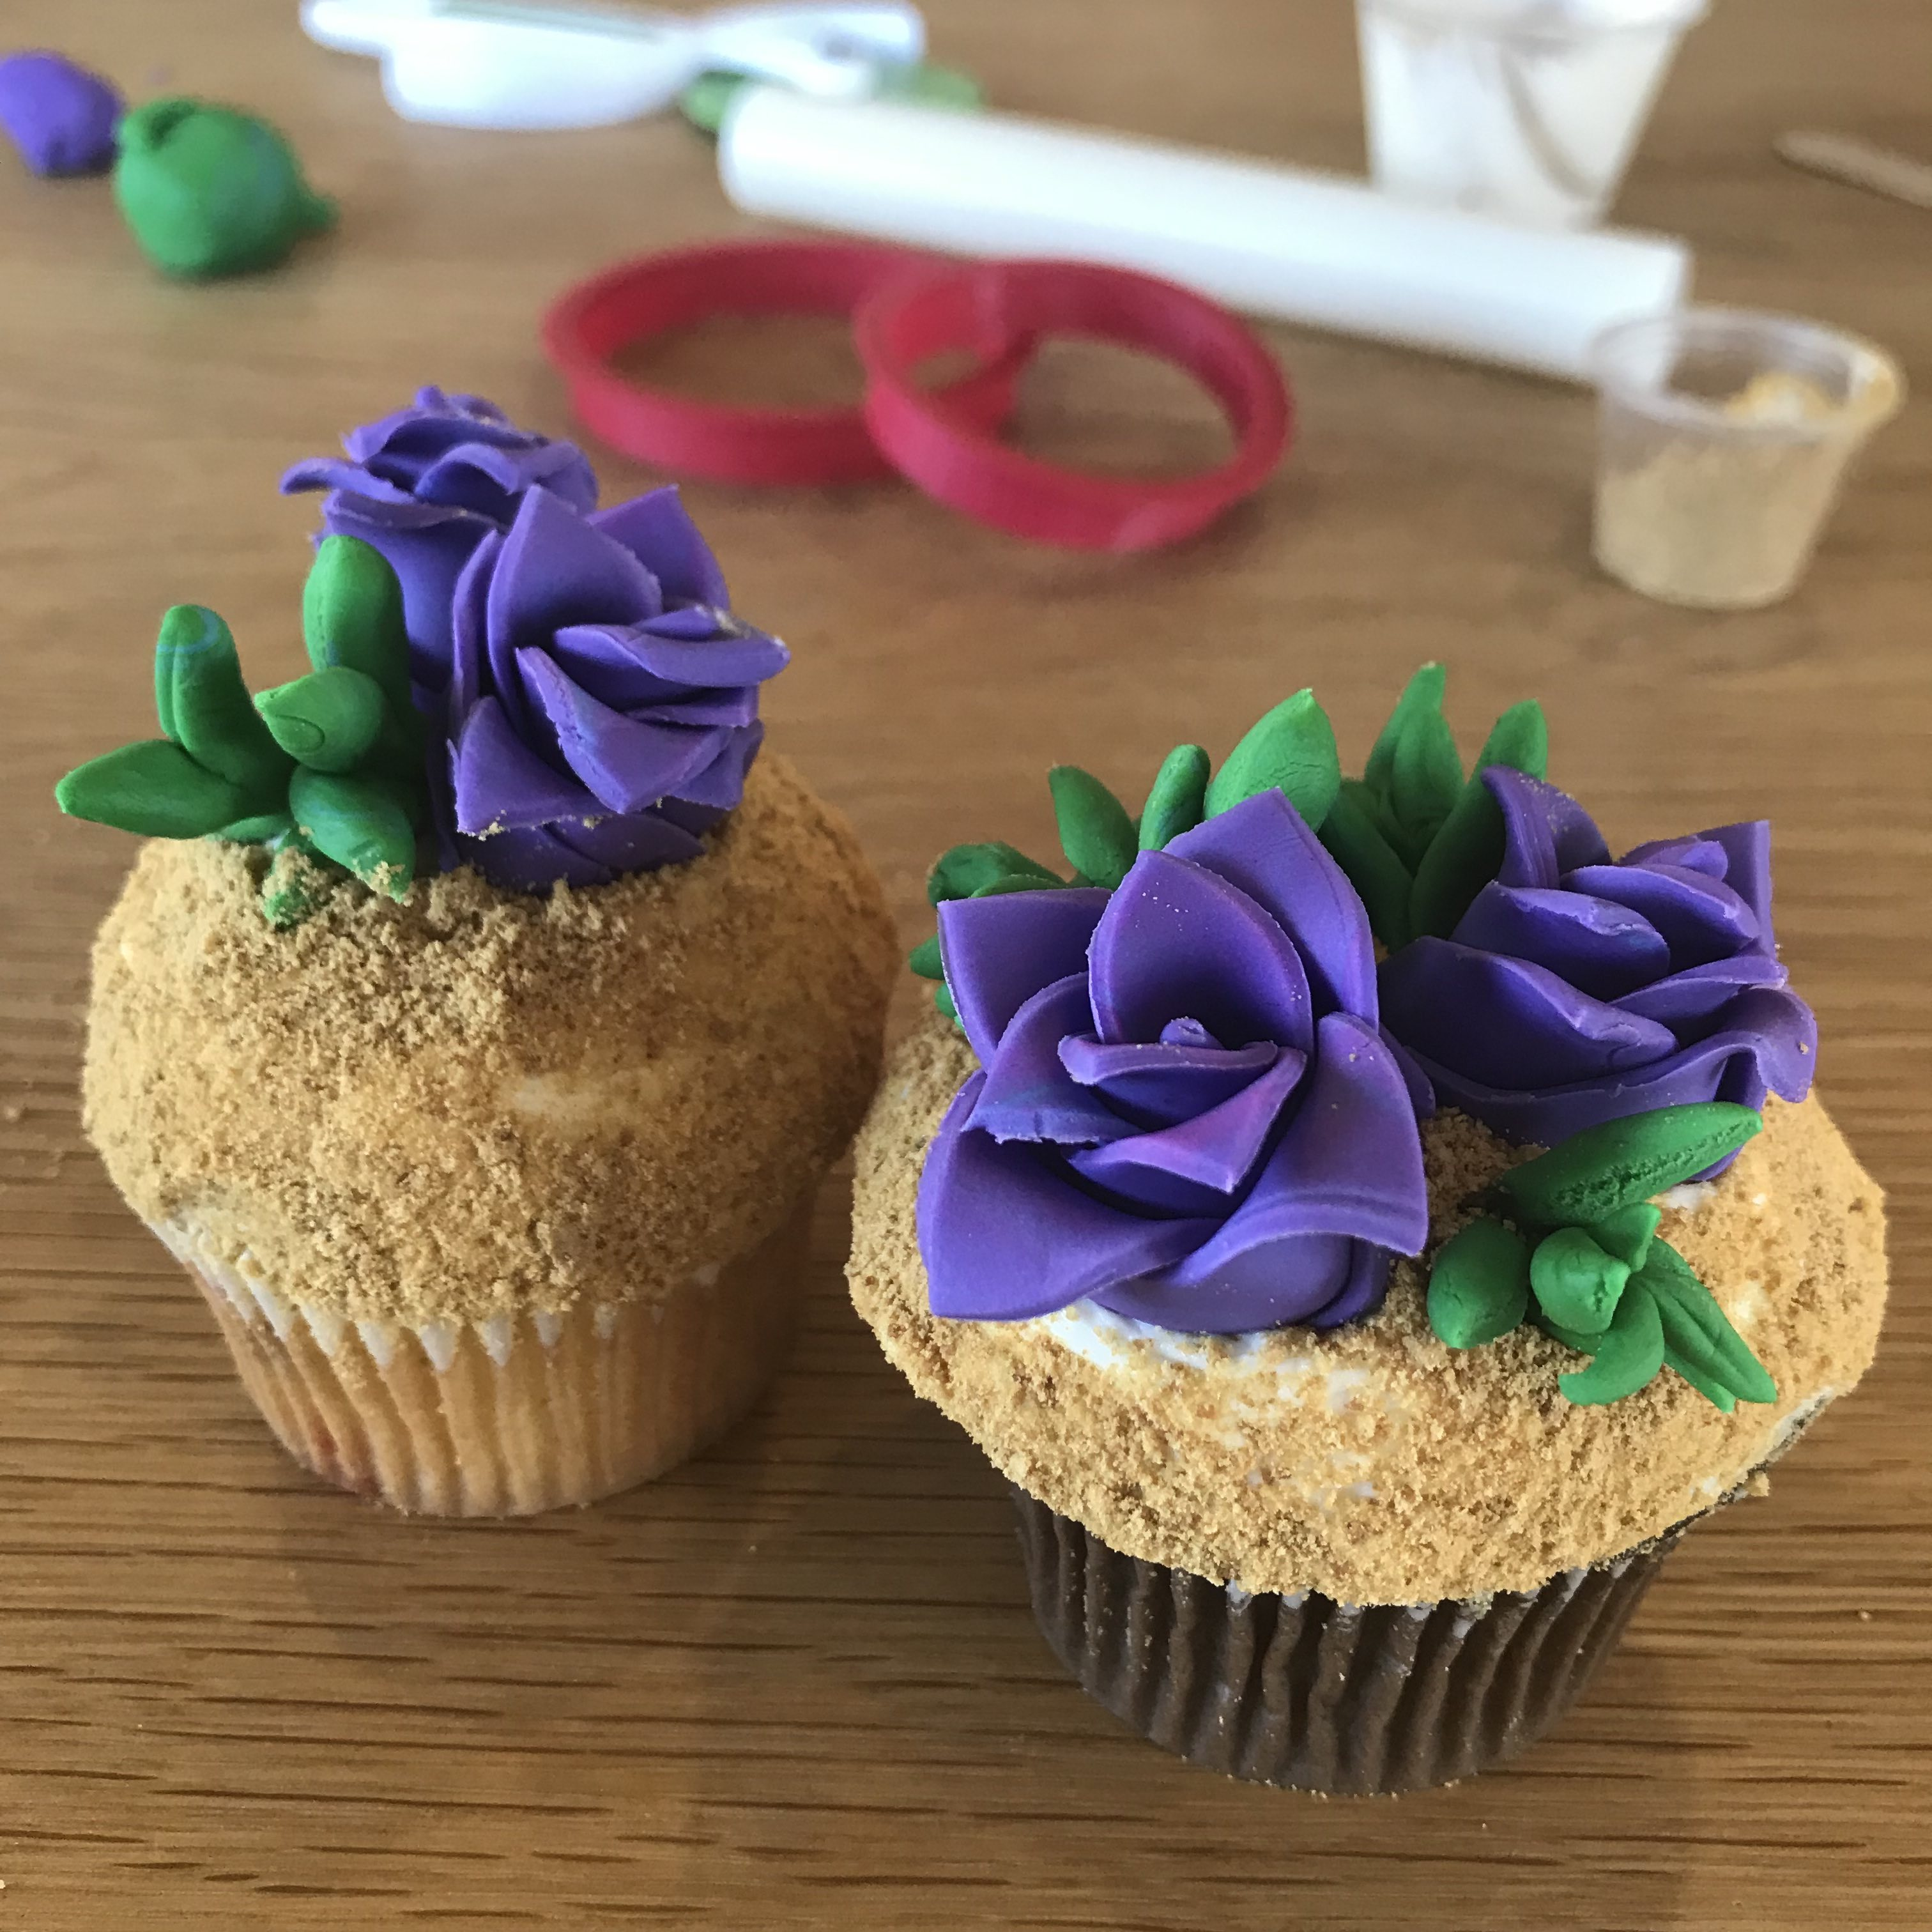 Cupcake Decorating with Duff's Cakemix